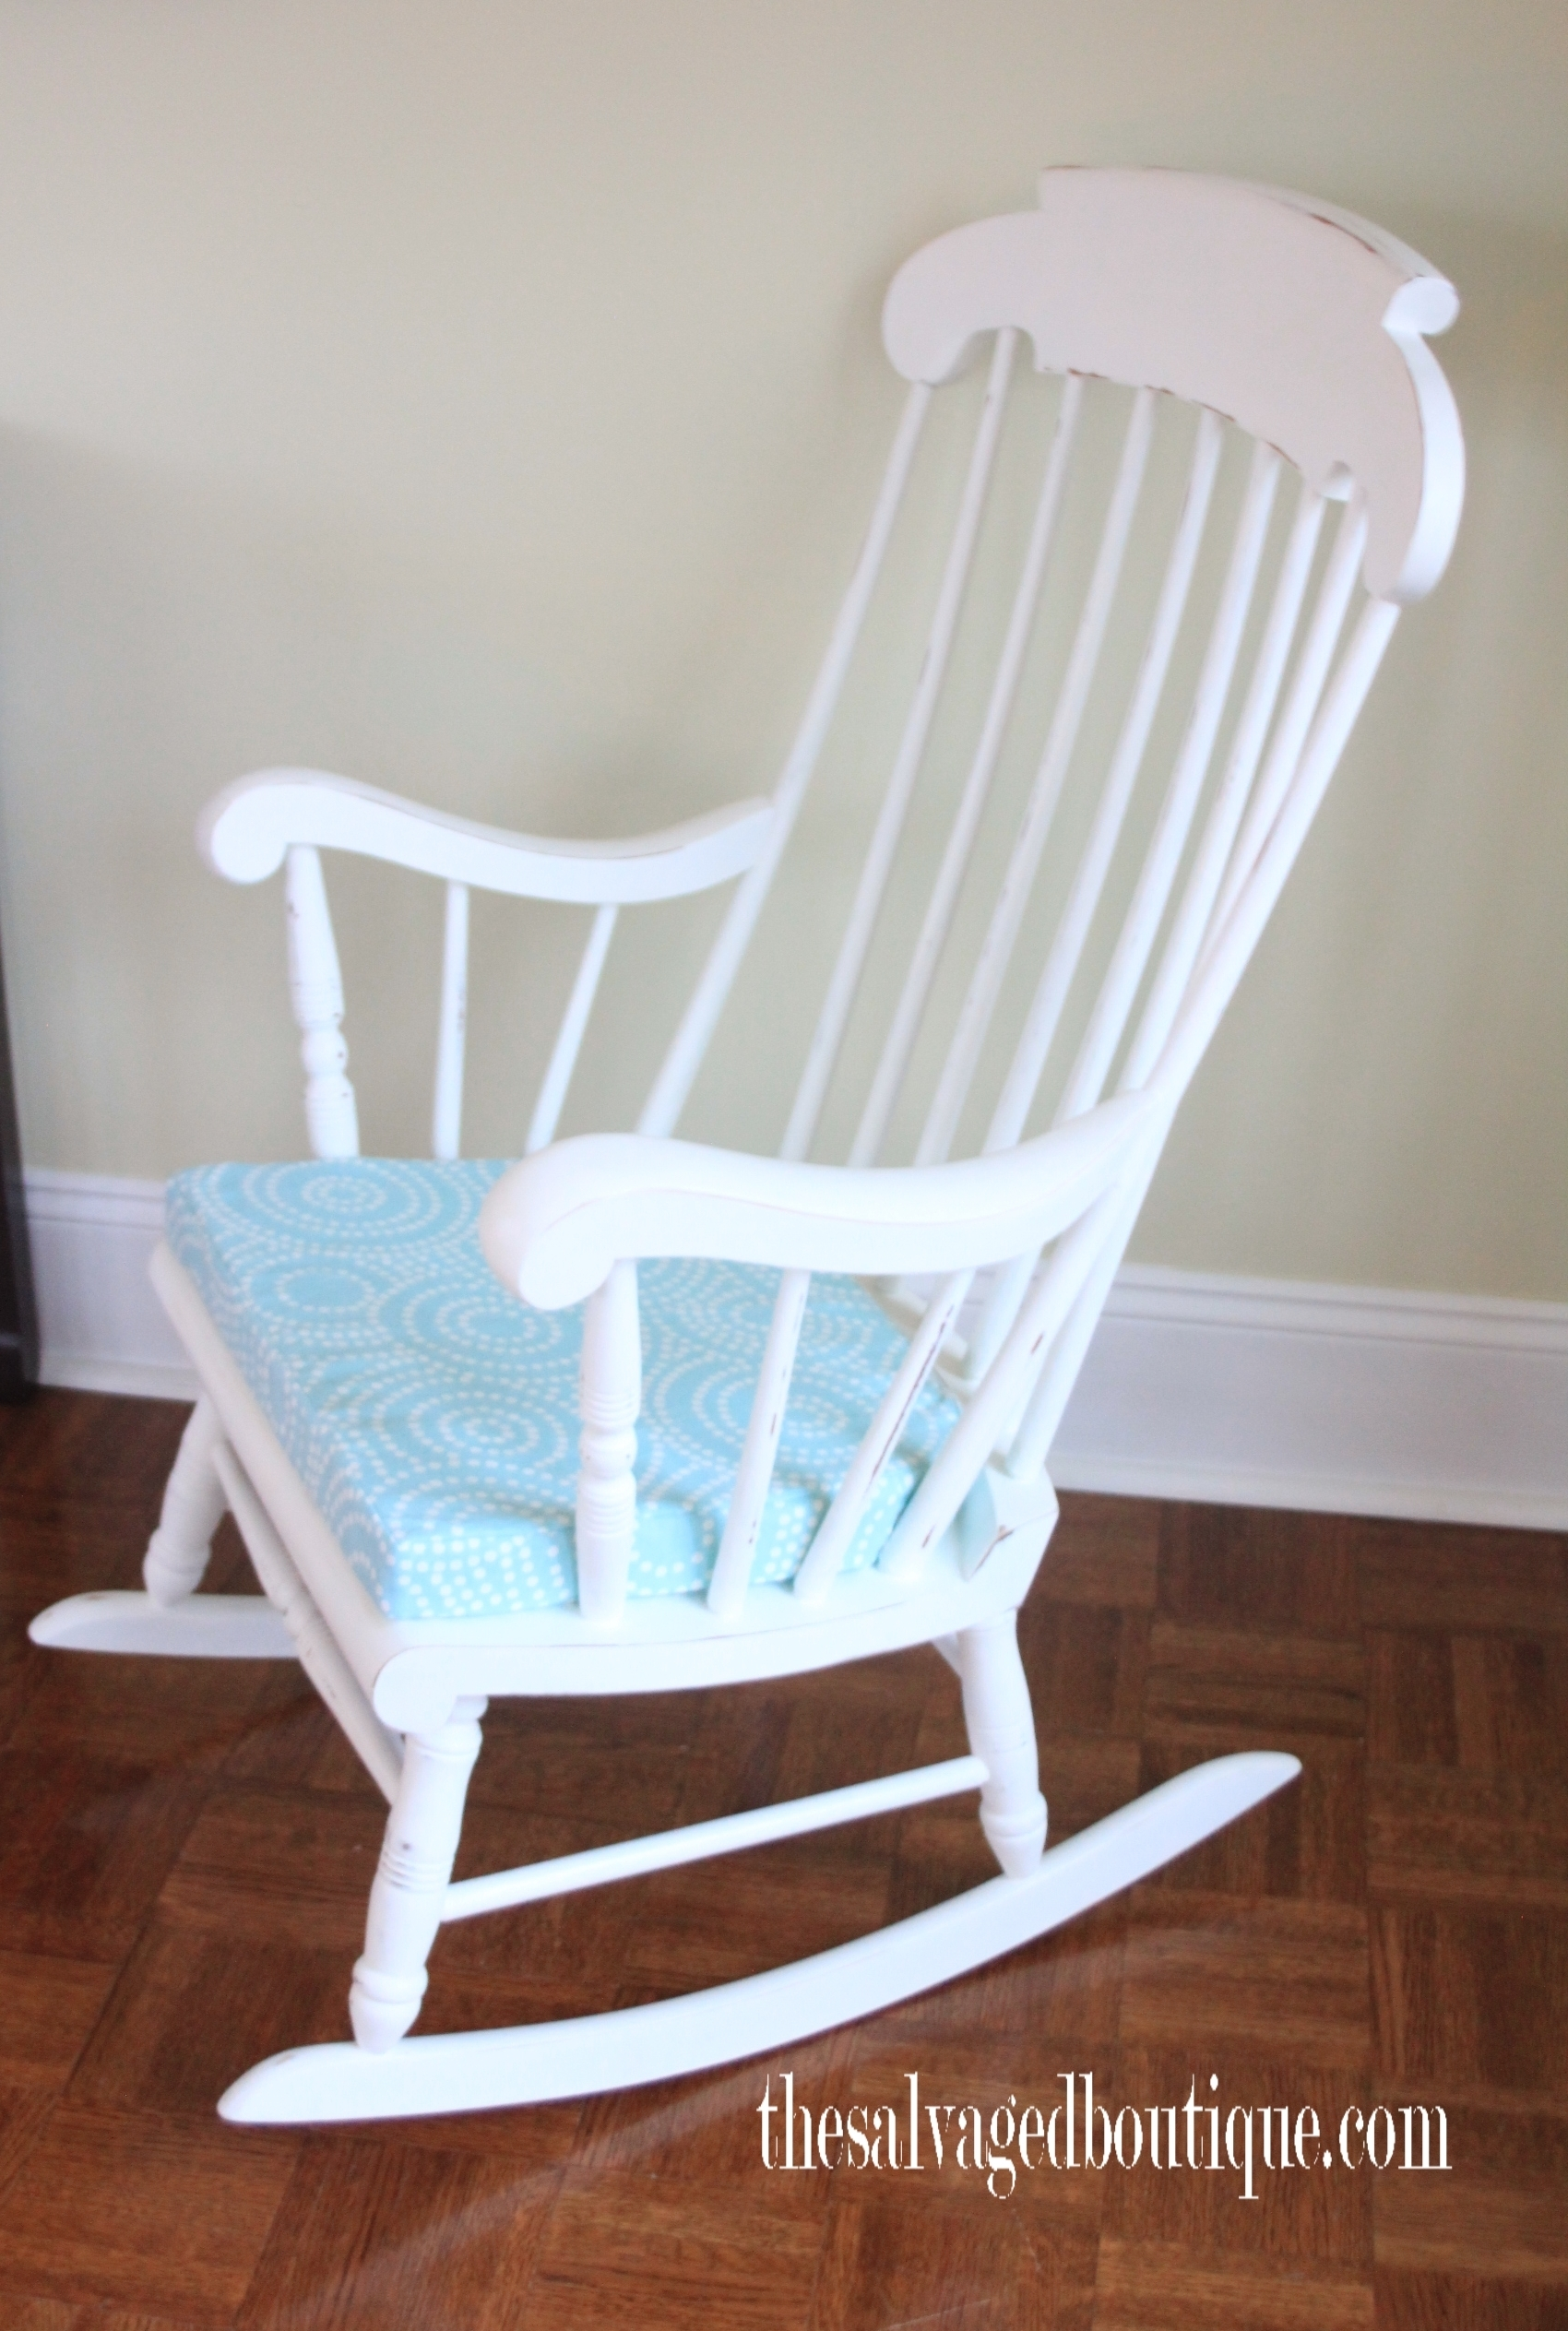 Grandpa's Rocking Chair Brightened Up For New Baby Nursery (#6 of 15)